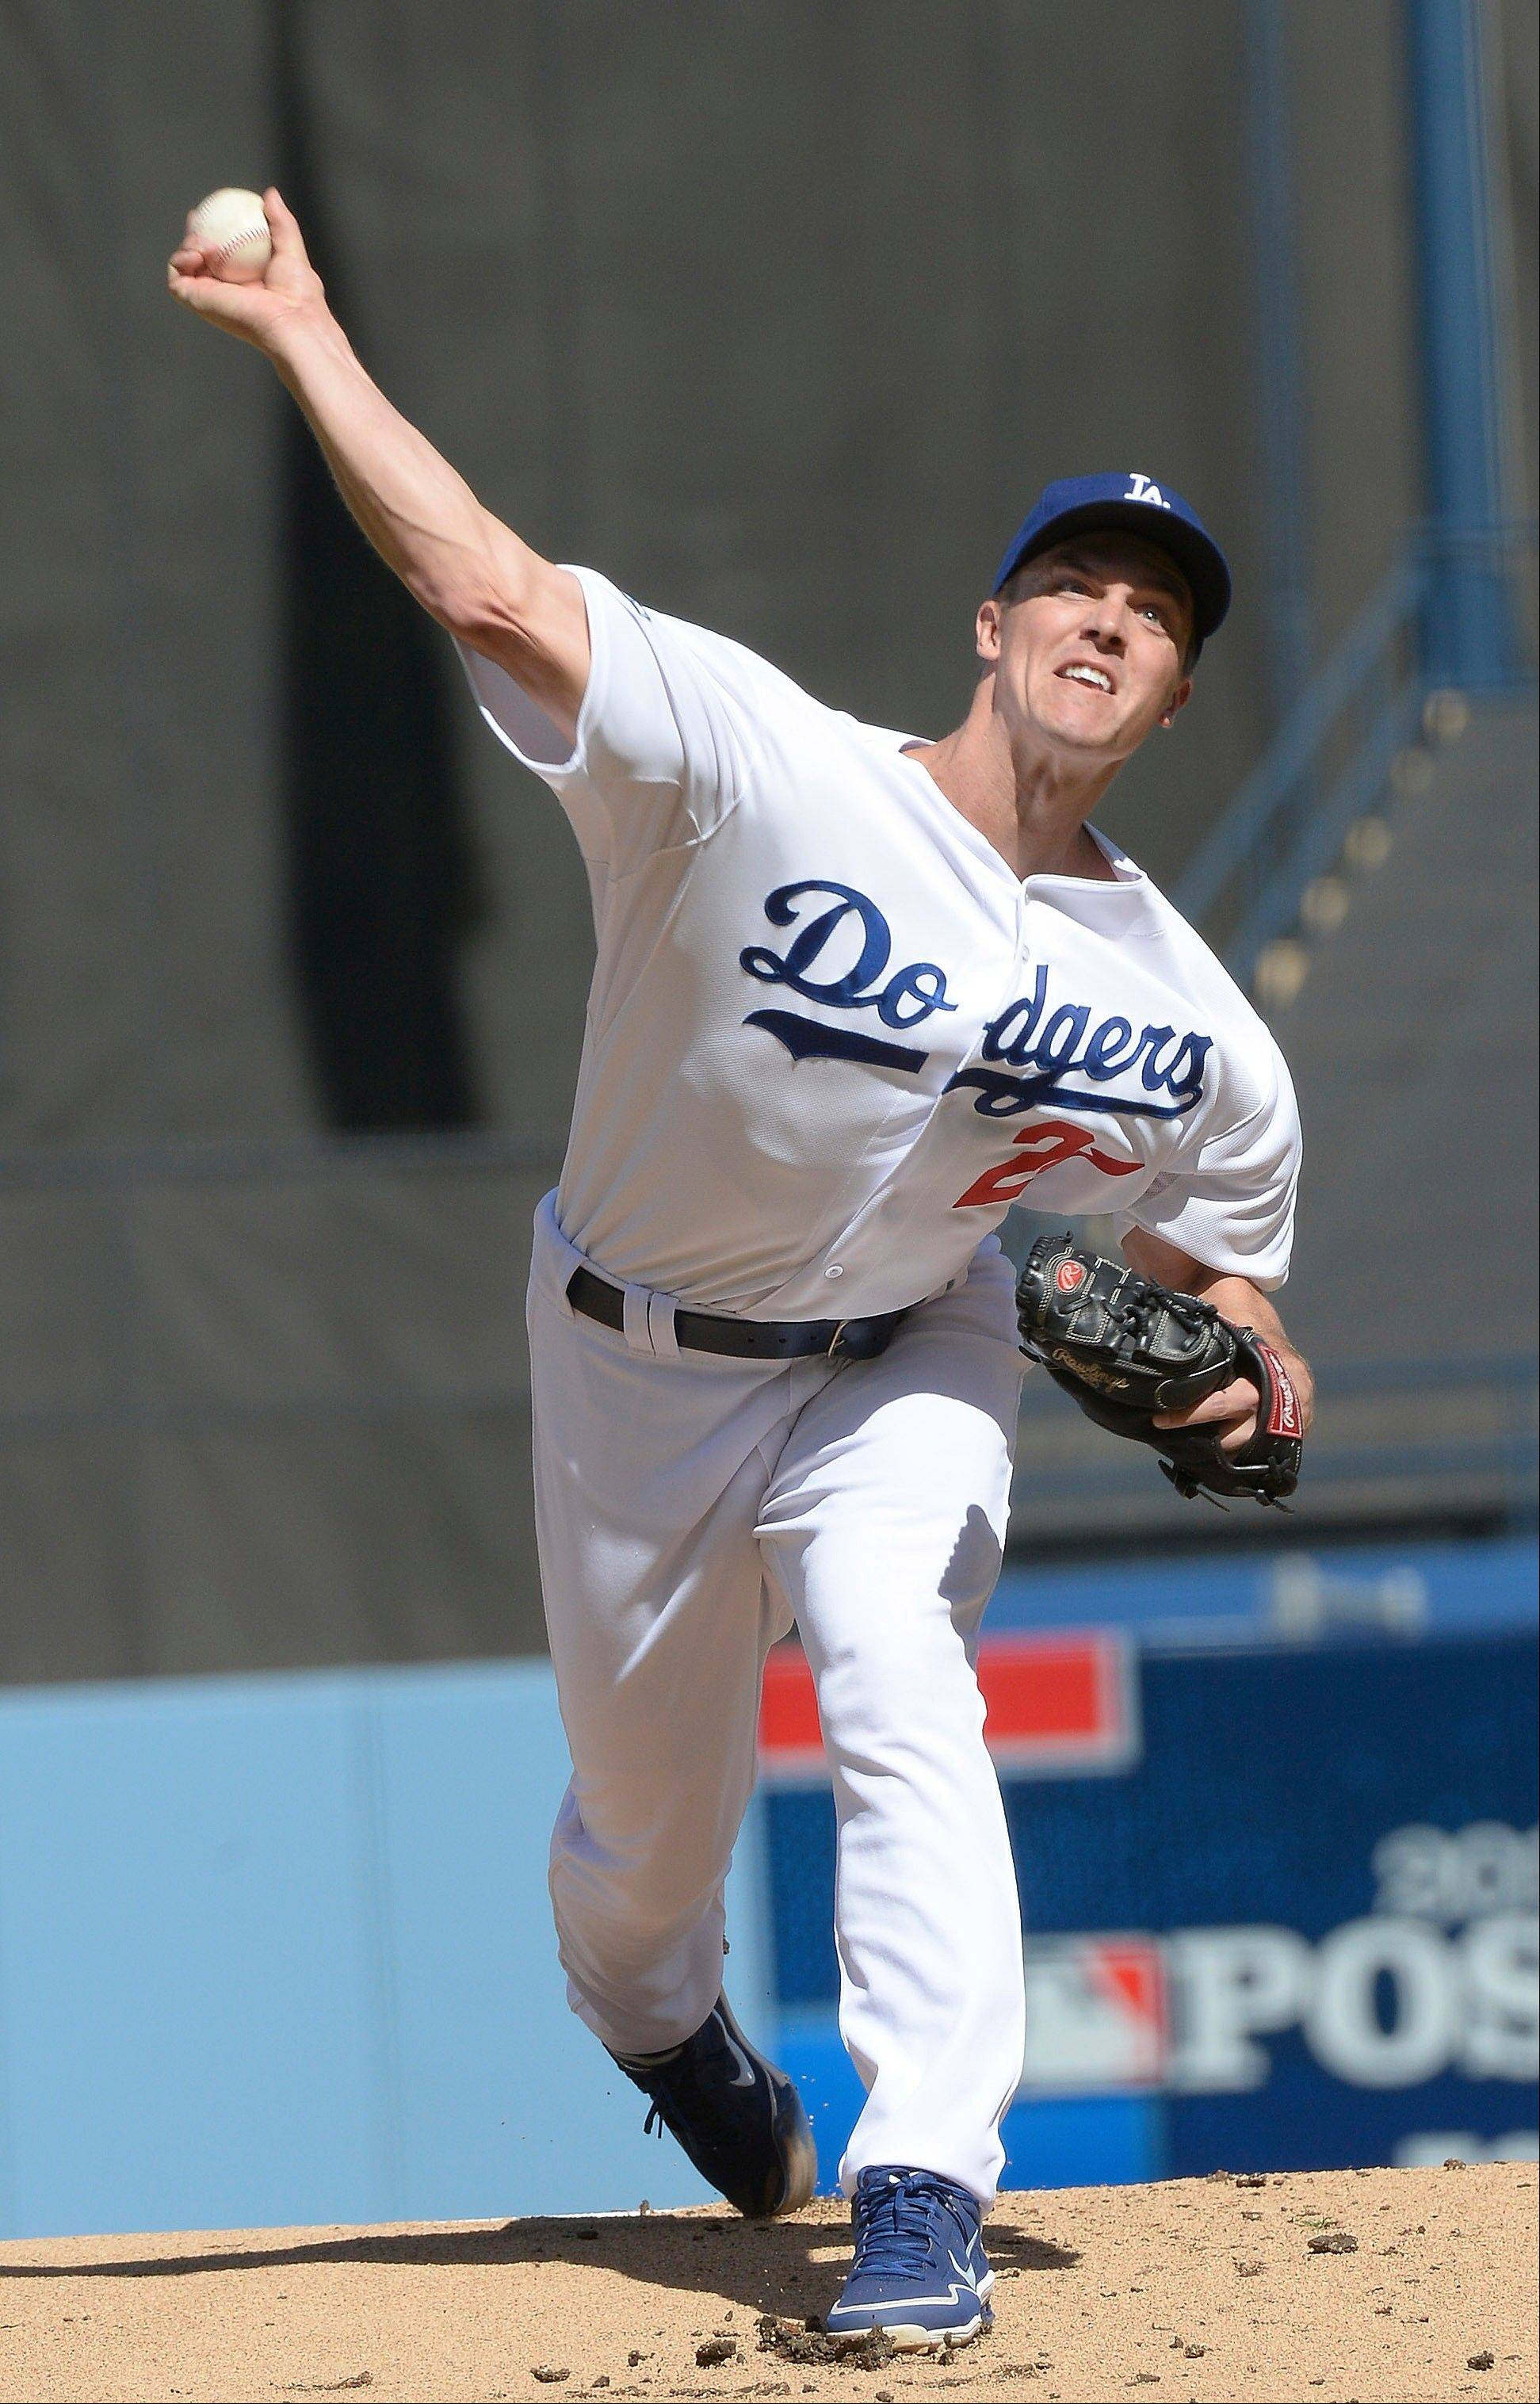 Dodgers starting pitcher Zack Greinke throws during the first inning of Game 5. Greinke struck out four and earned the win.